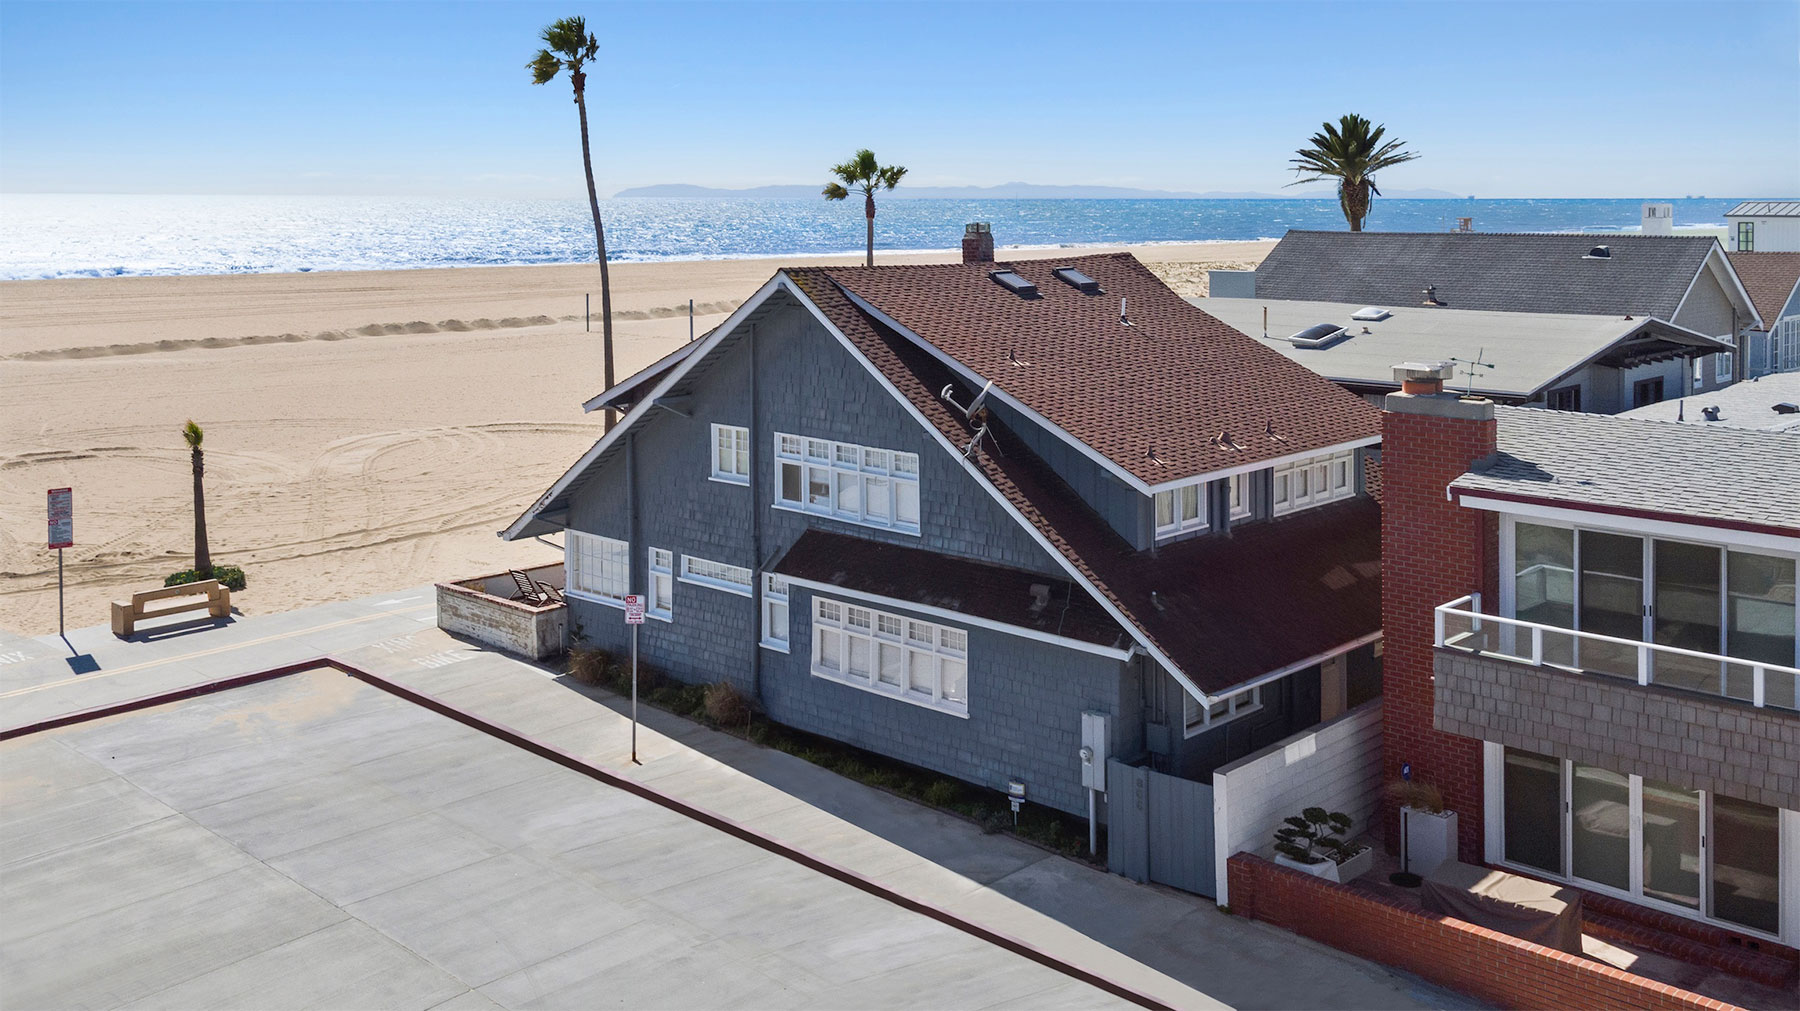 Single Family Home for Sale at 800 W Oceanfront Newport Beach, California, 92660 United States